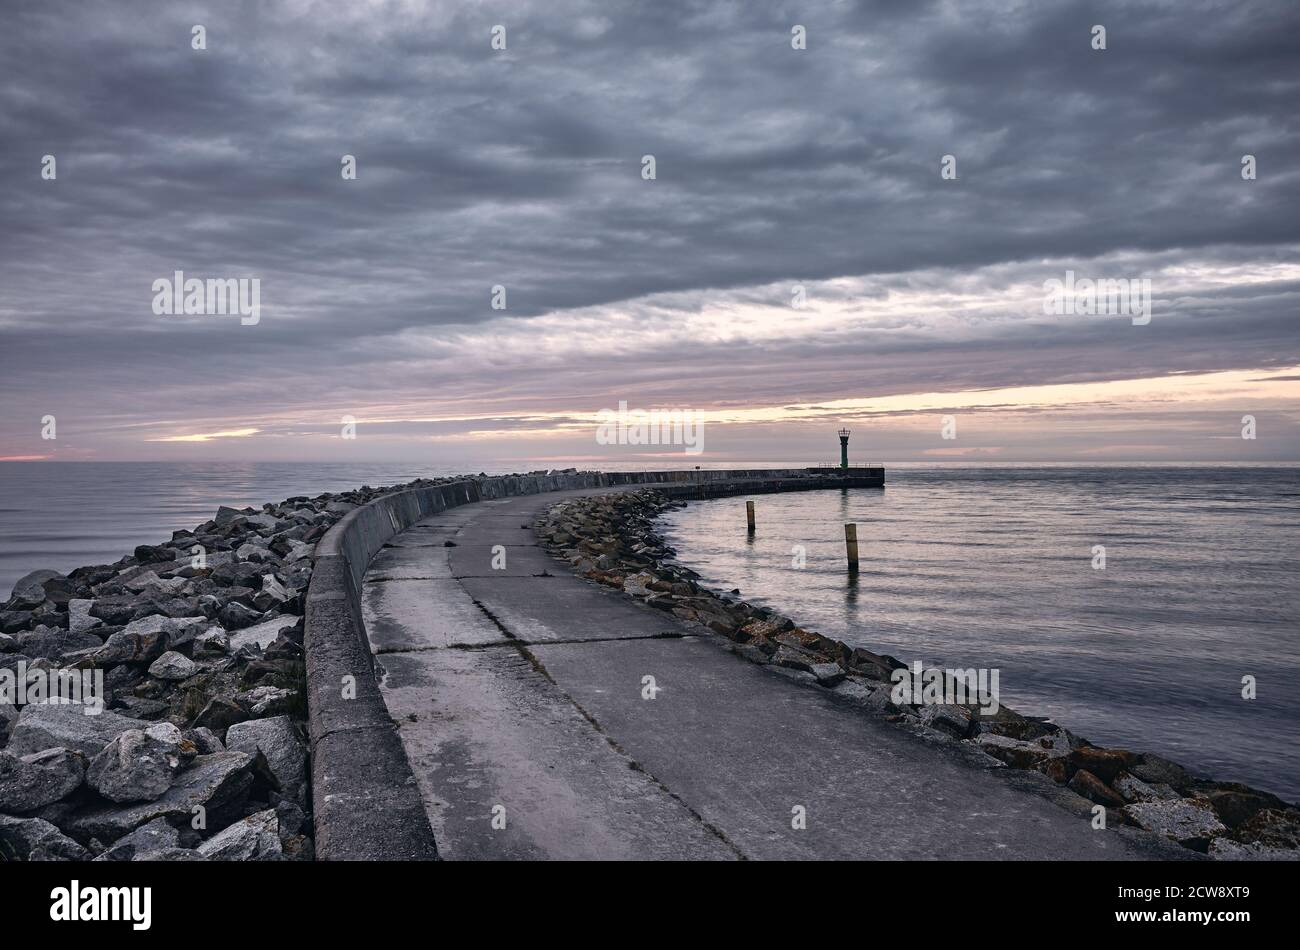 Rocky pier at sunset with dark sky, color toning applied. Stock Photo